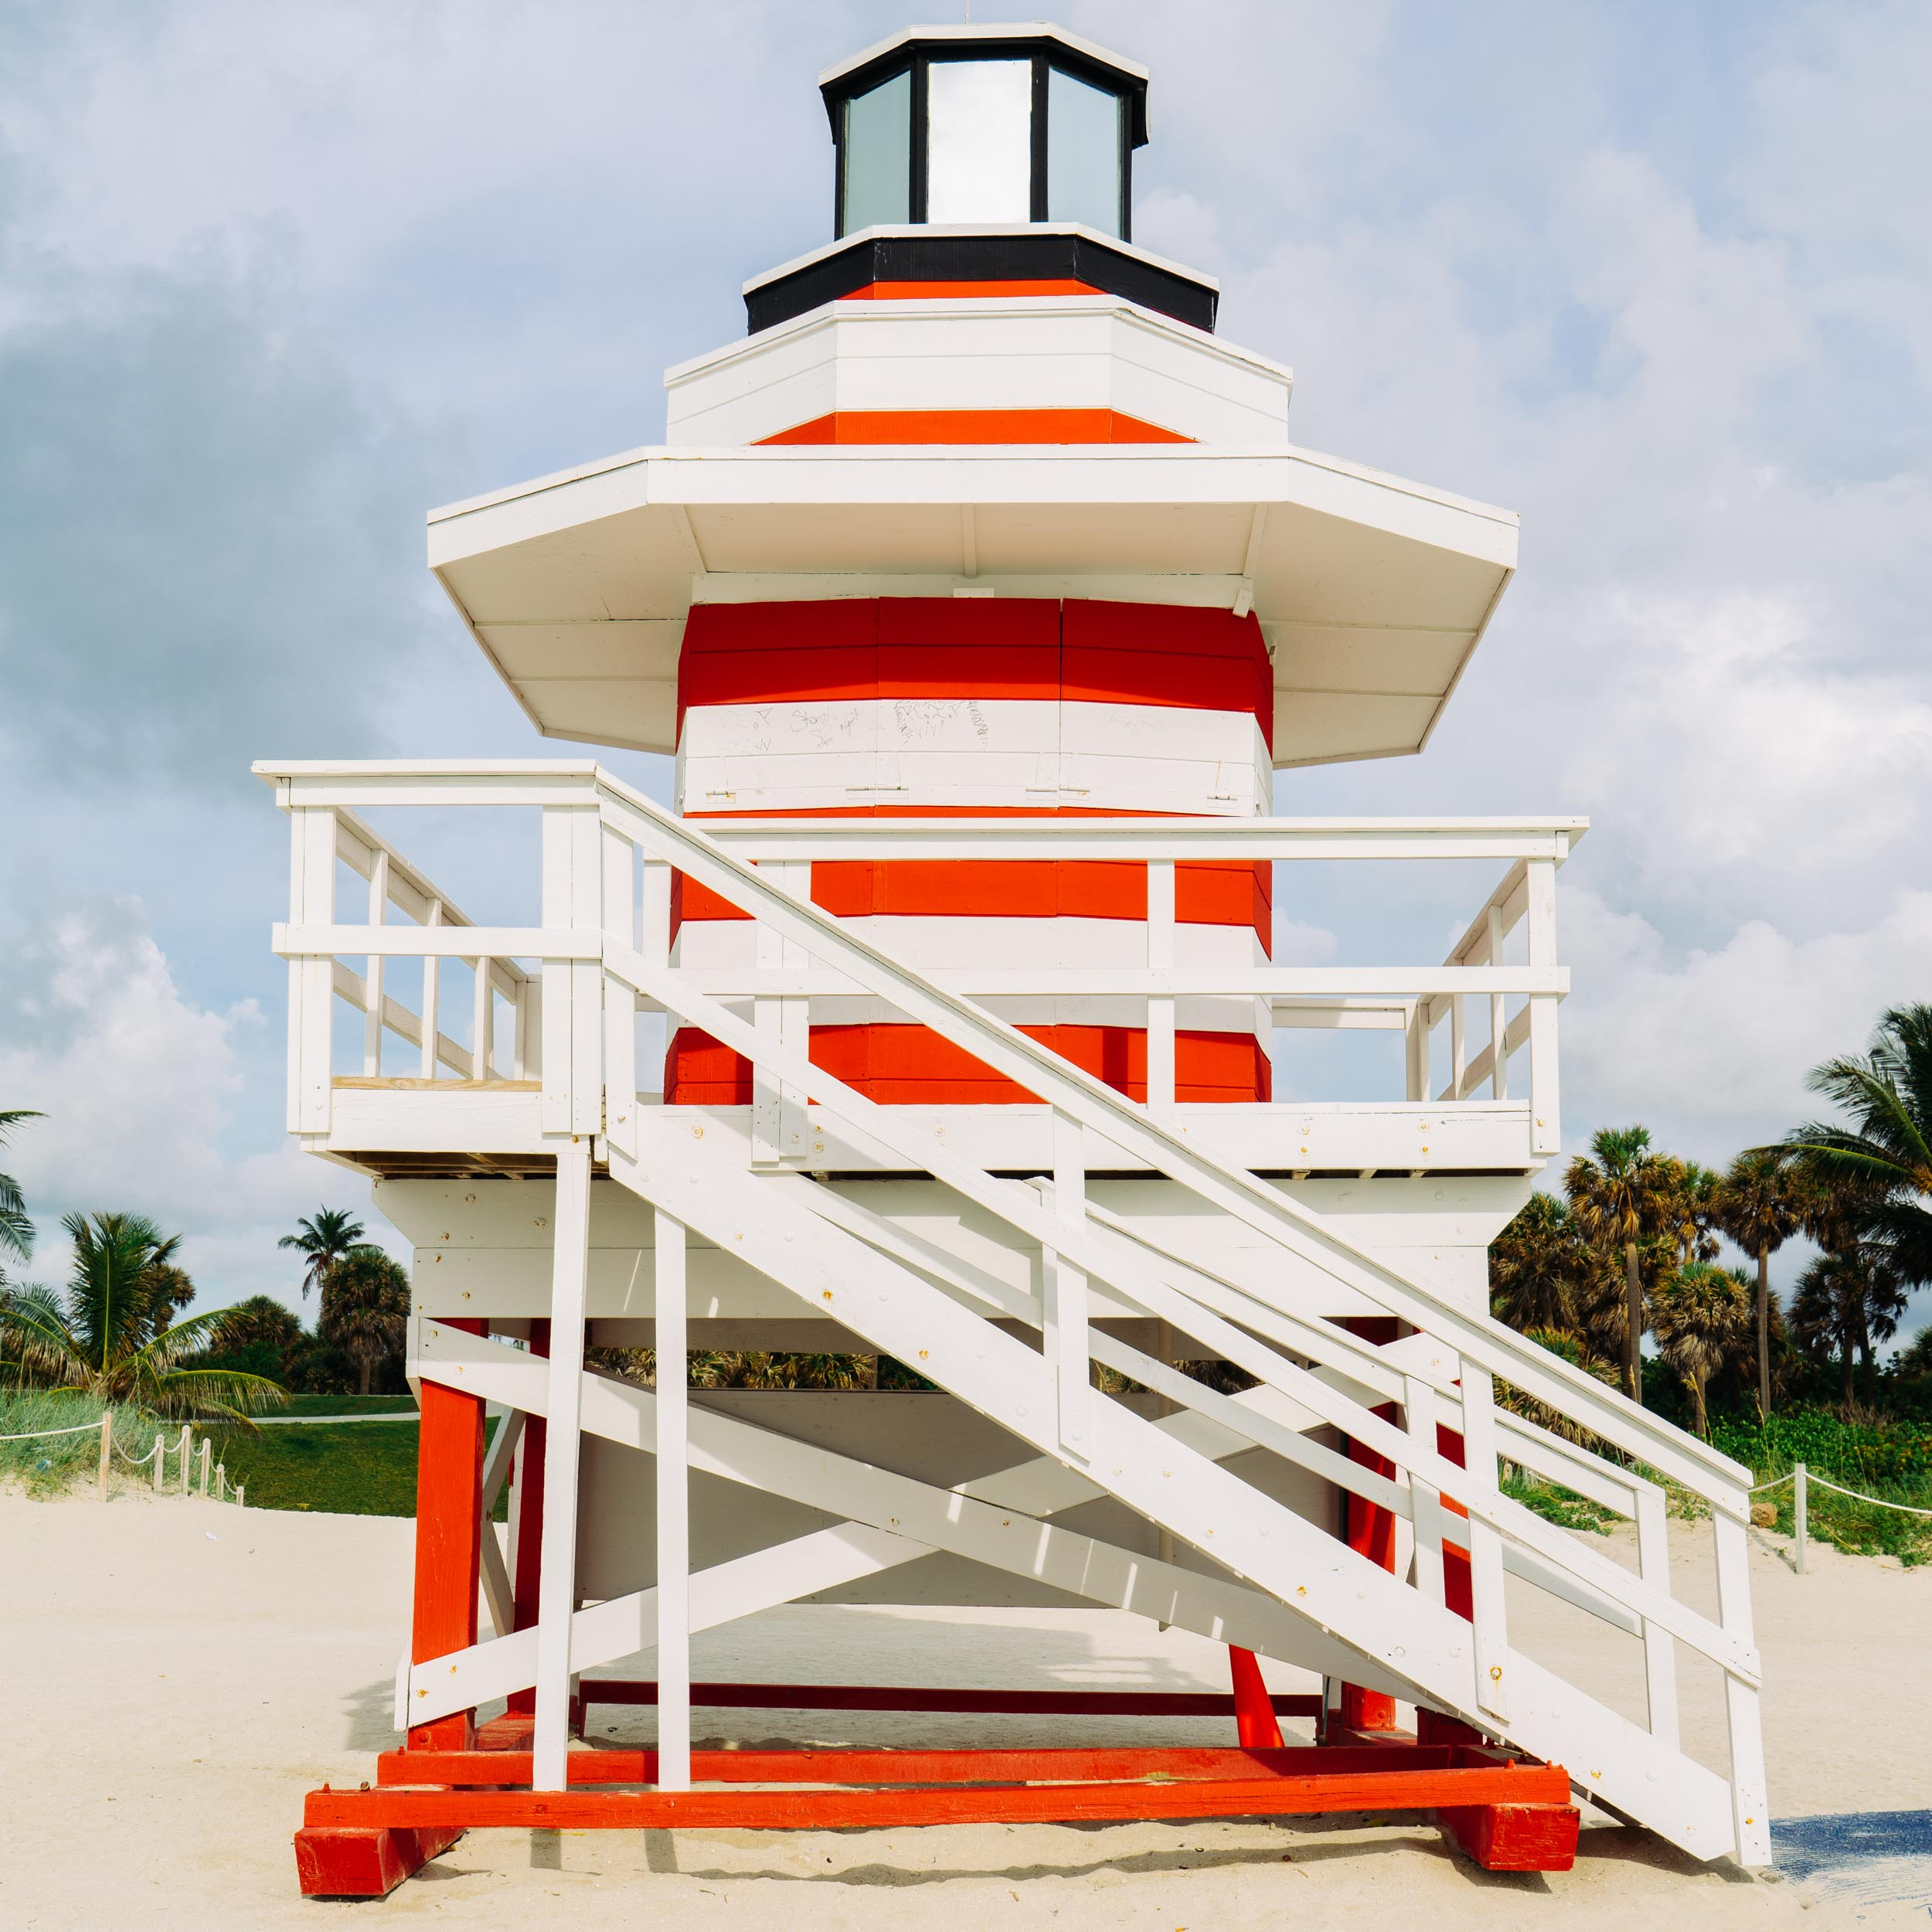 Miami Lifeguard Stand - The Jetty